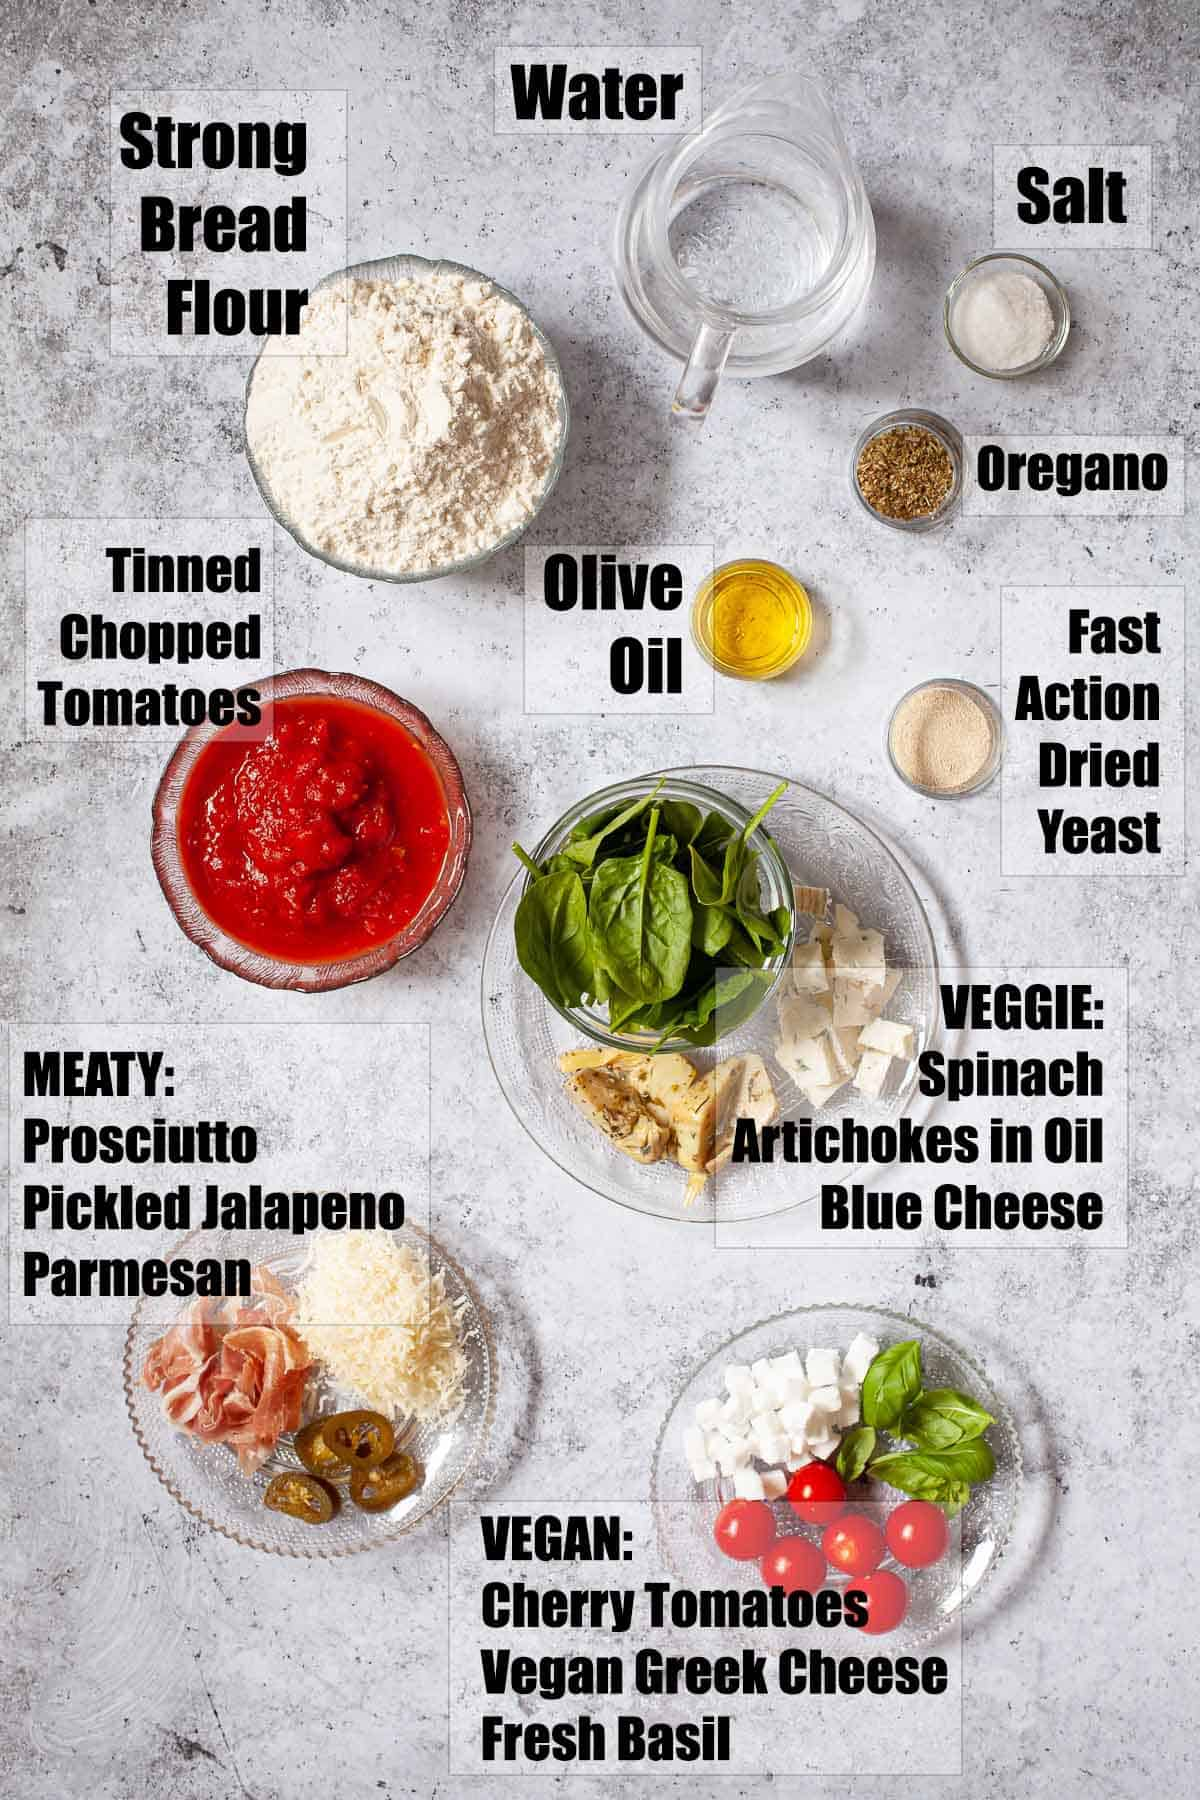 Ingredients for mini pizza with text overlay